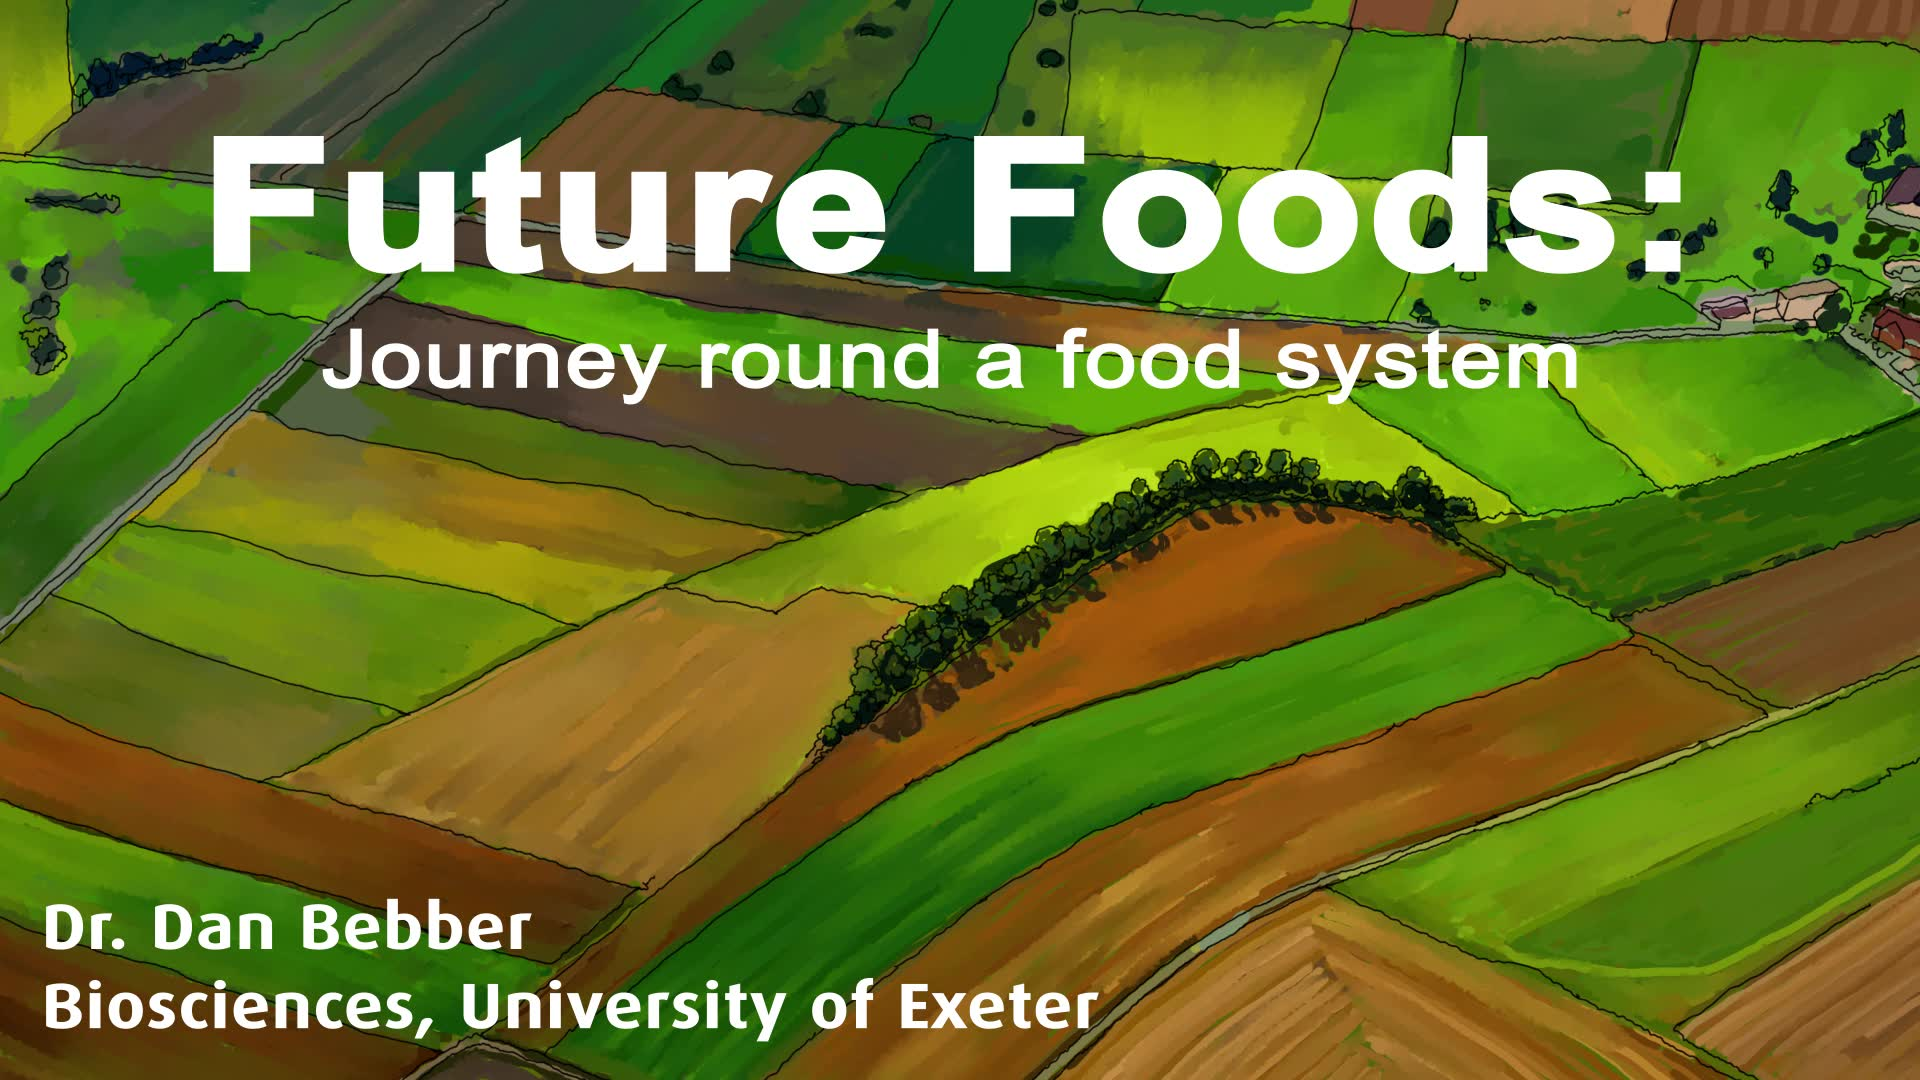 A journey round a food system